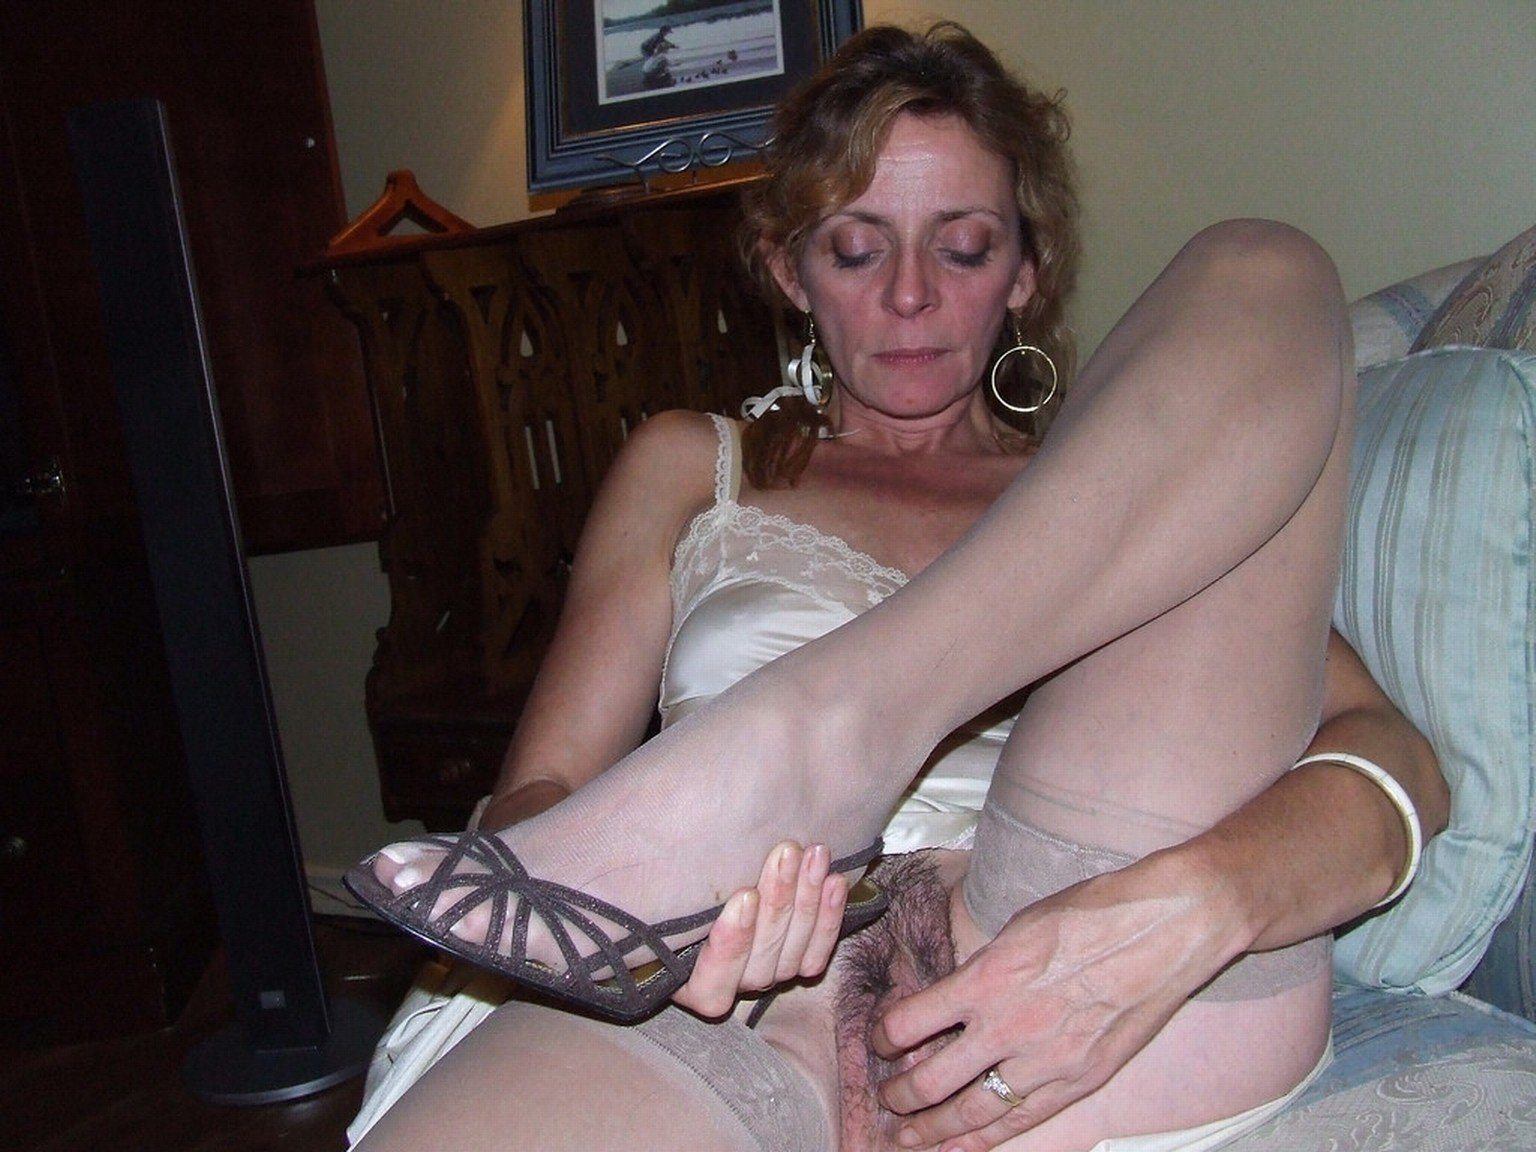 A cuckold husband films